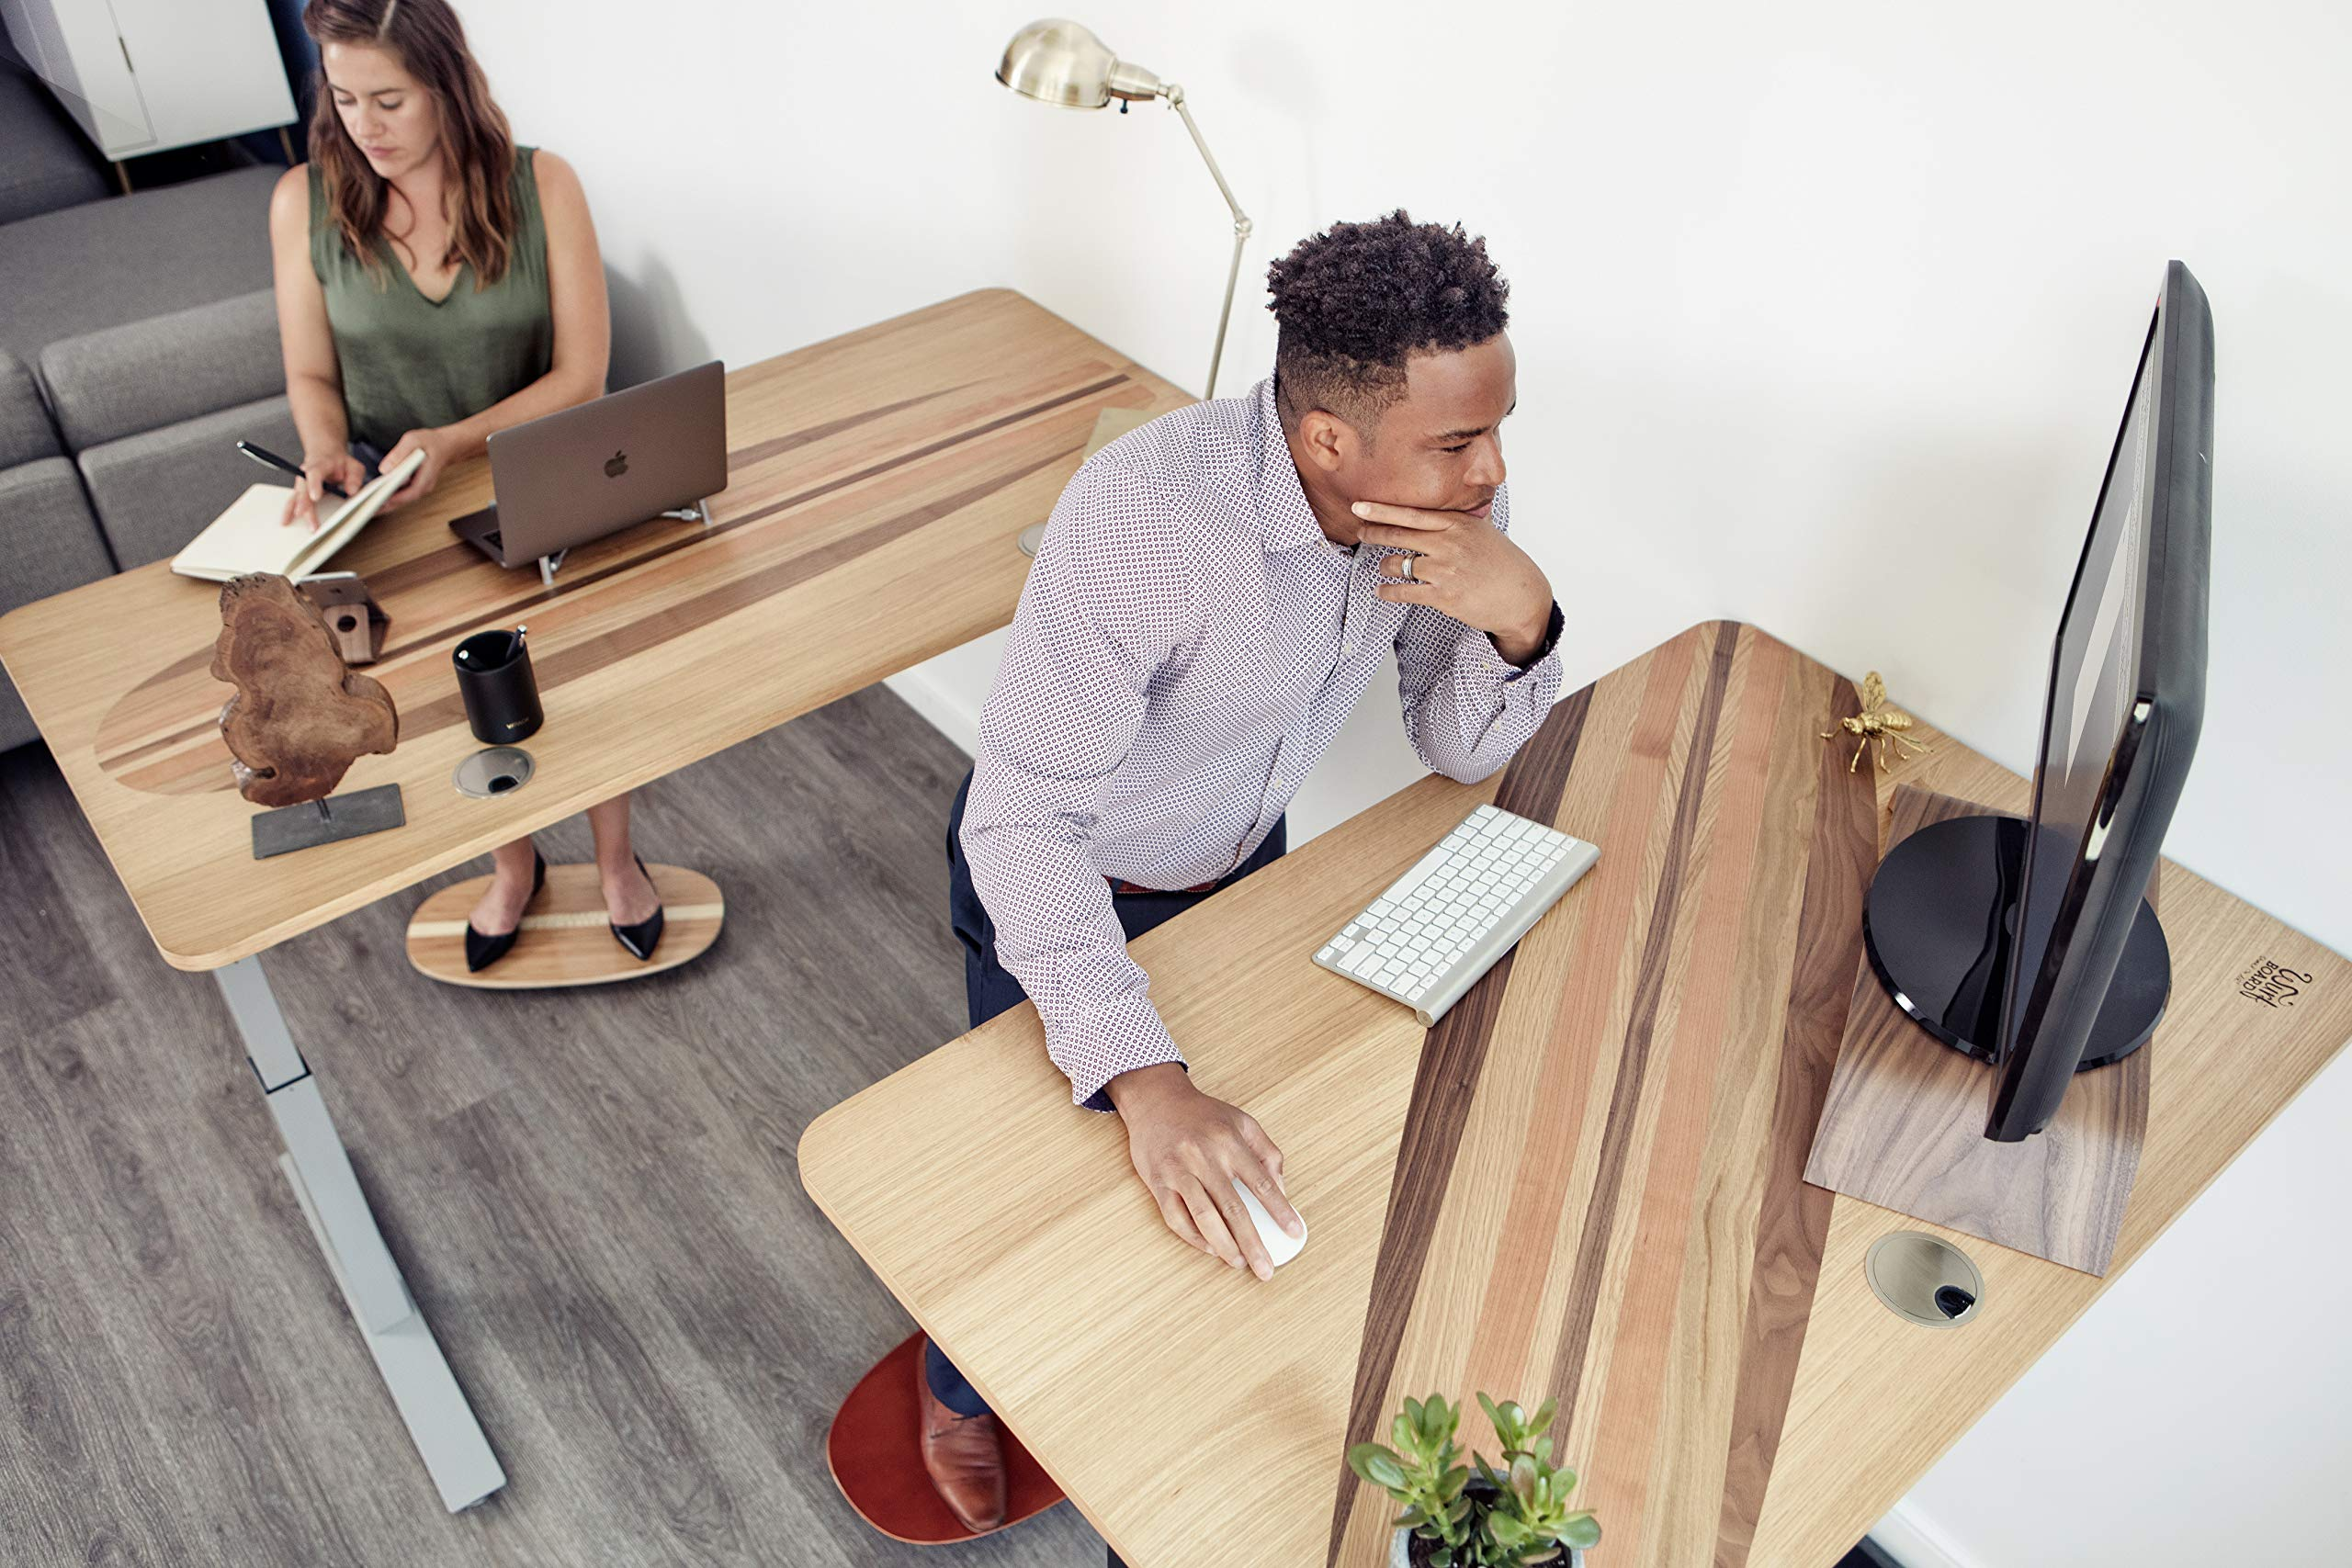 ALLEYOOP Wood Rocker Board • Unique 360° Omni-Directional Rocking Movement • Ergonomically Engineered for Stability at Your Standing Desk (Medium, Cherry)